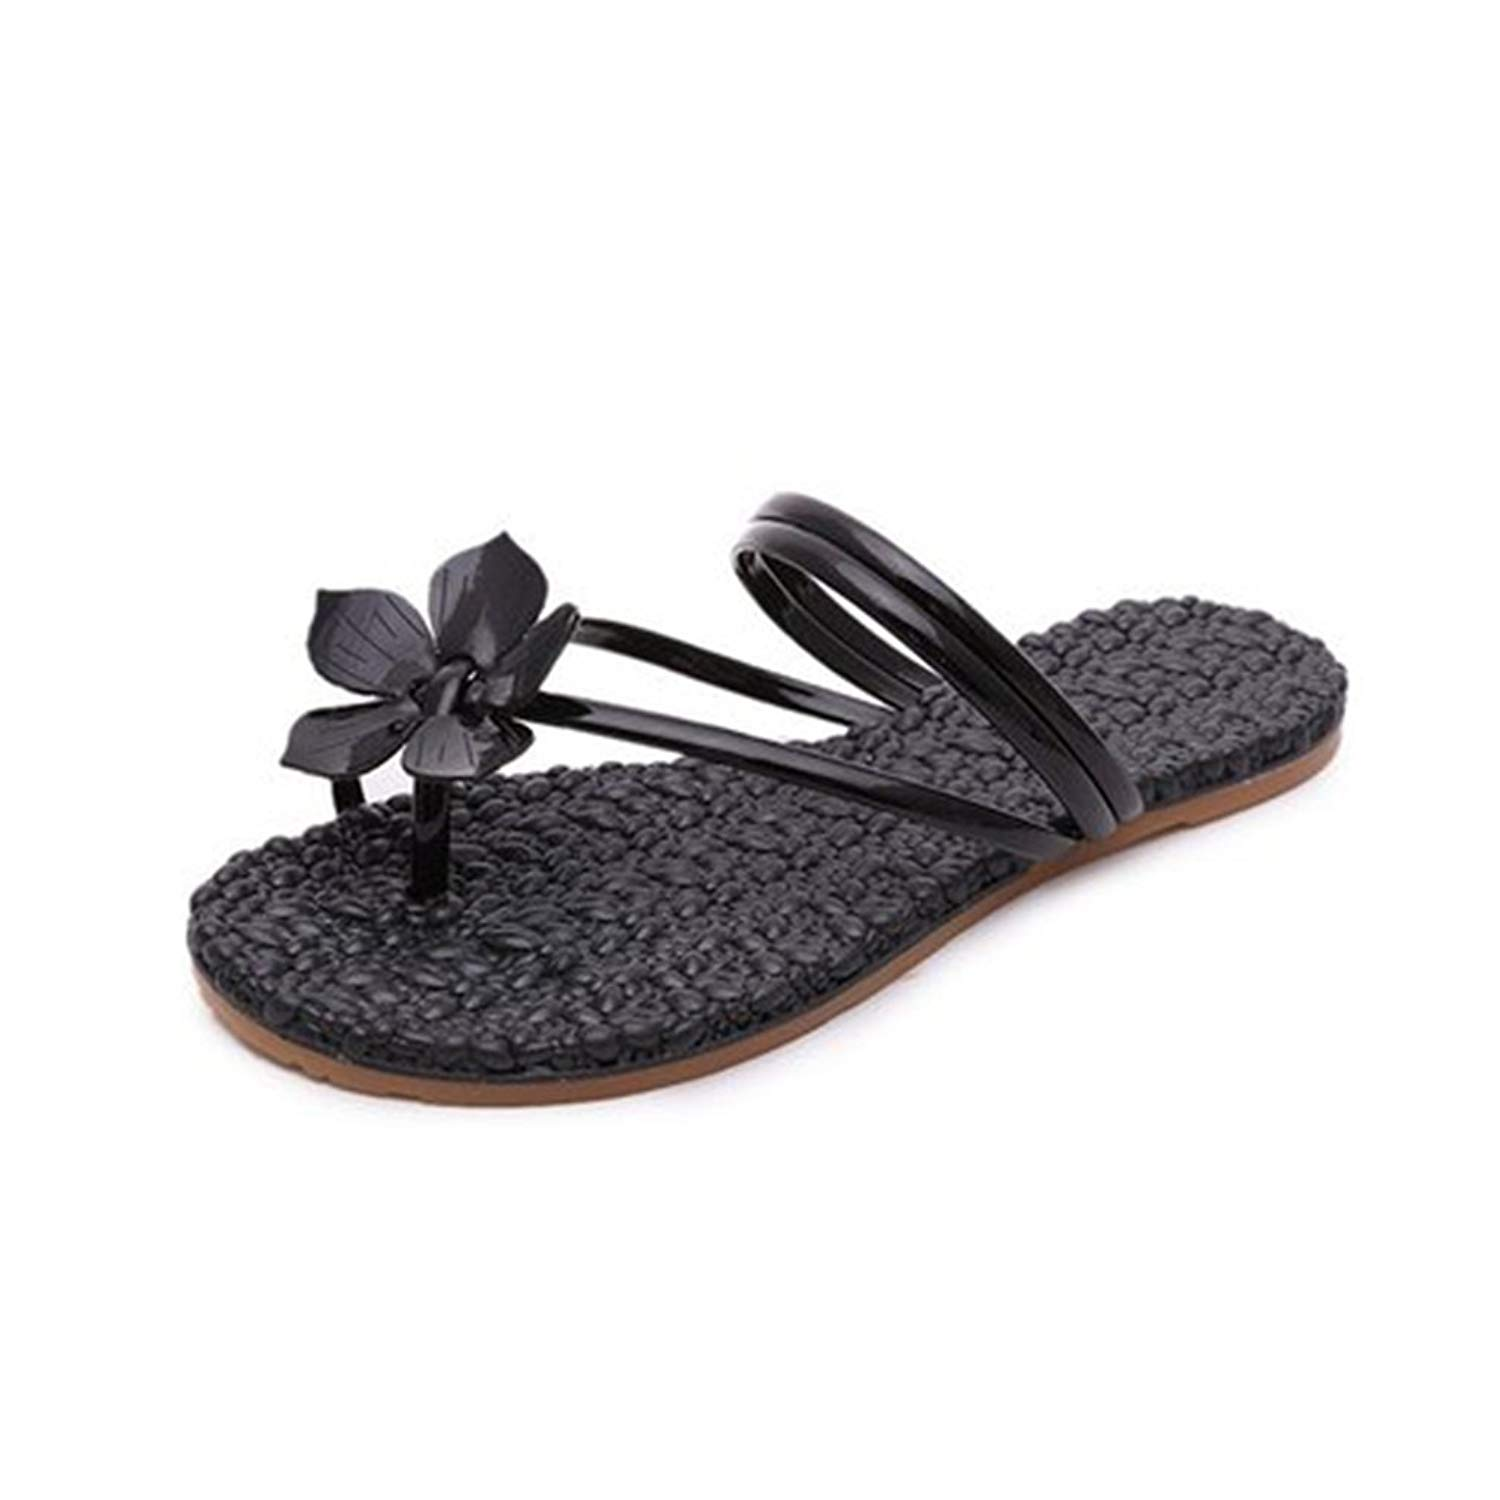 cfbb720a0901 Get Quotations · GIY Bohemian Flowers Flat Flip Flops Sandals for Women Toe  Ring Comfort Strappy Summer Beach Thong